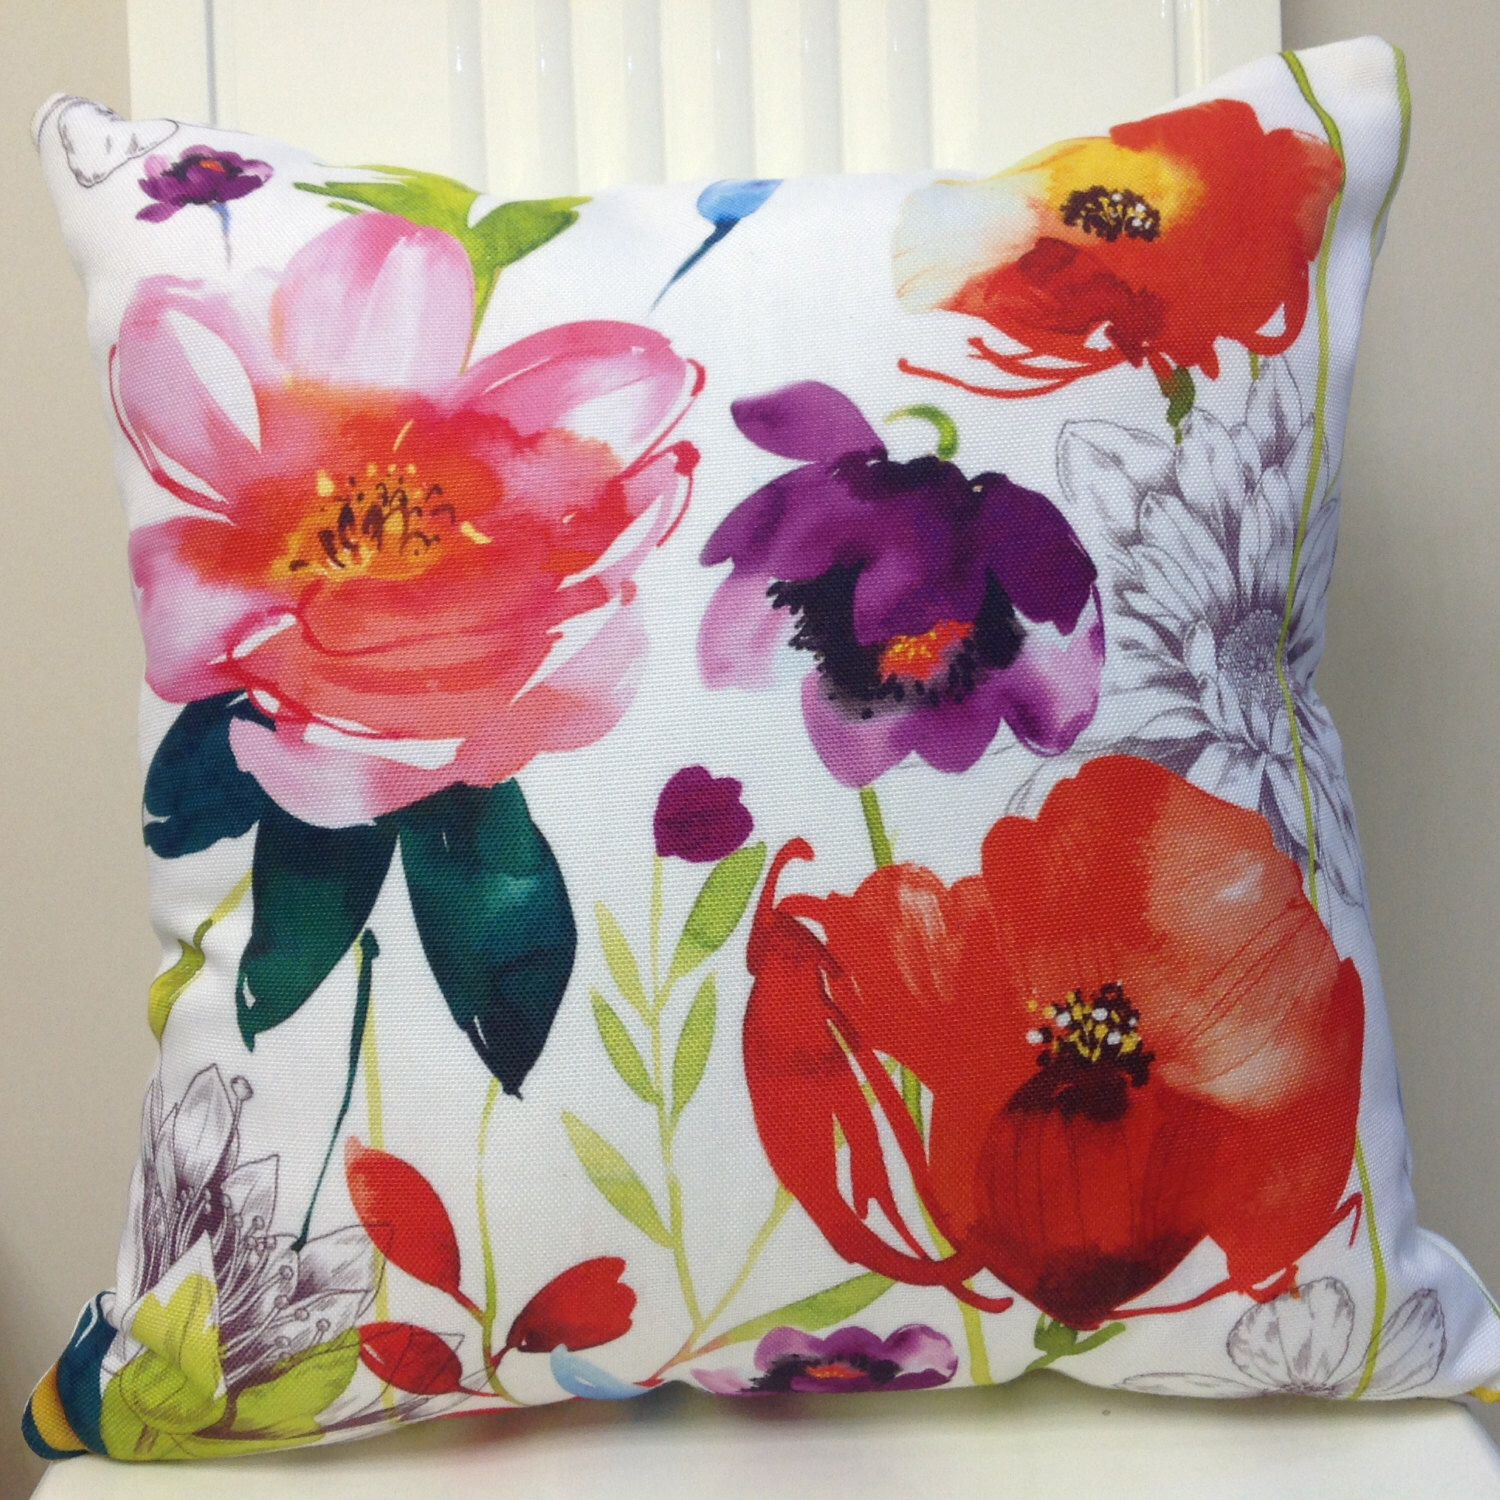 Pillows Pillow Covers Watercolor Floral Pillow Cover Decorative